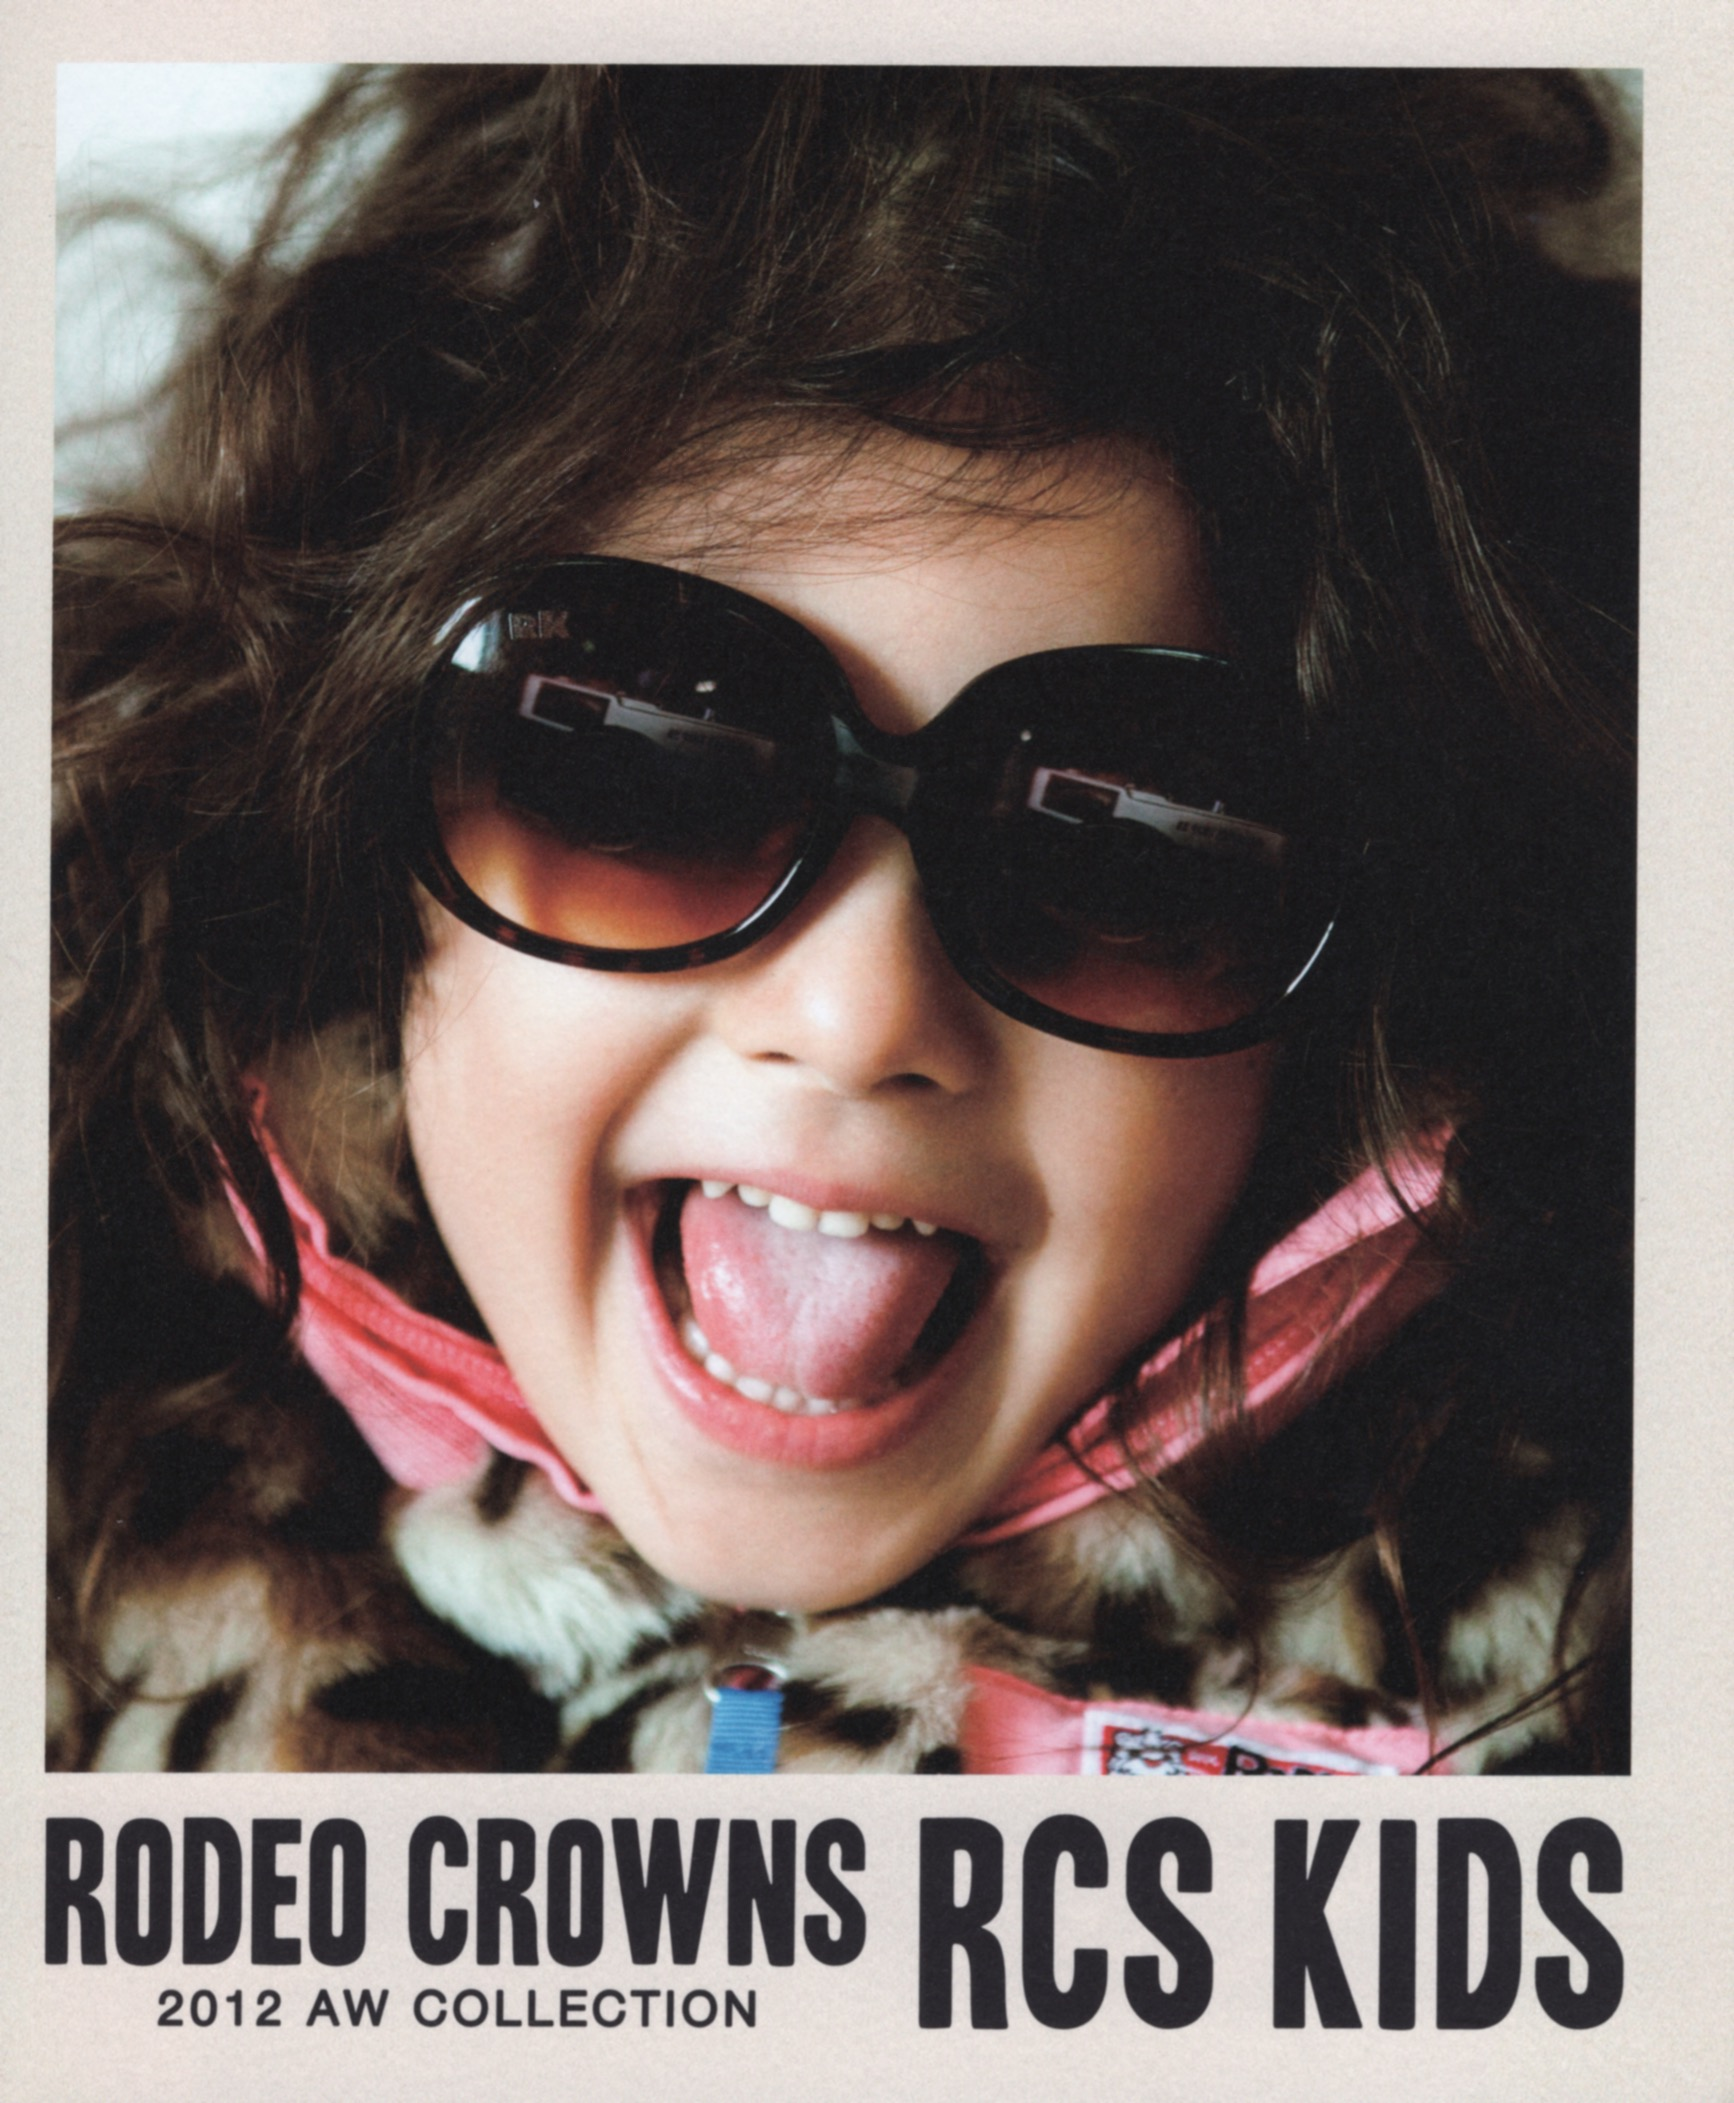 RODEO CROWNS 2012AW